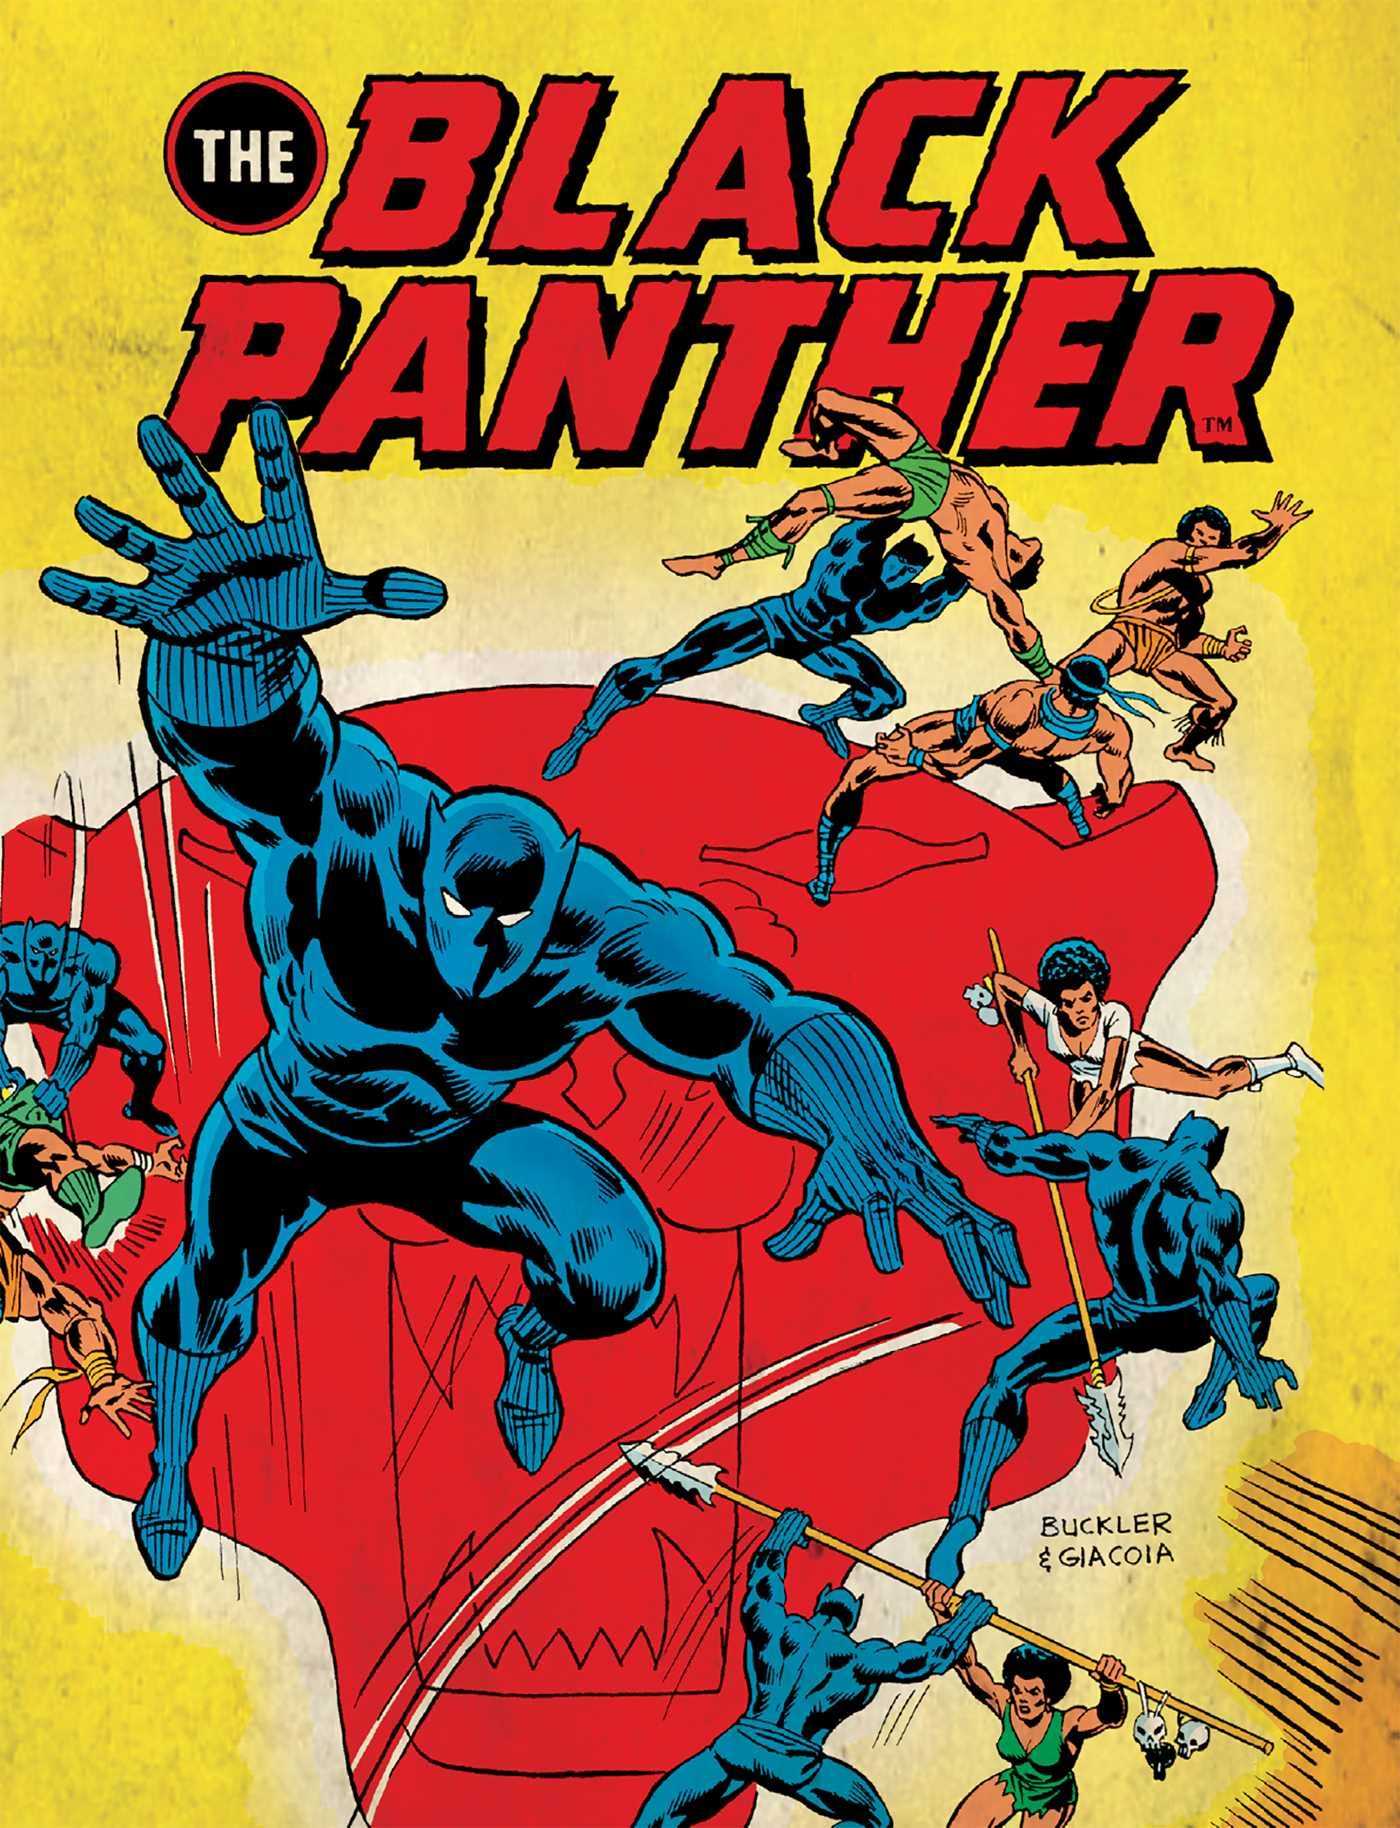 Marvel comics black panther deluxe note card set with keepsake book box 9781683833390.in03